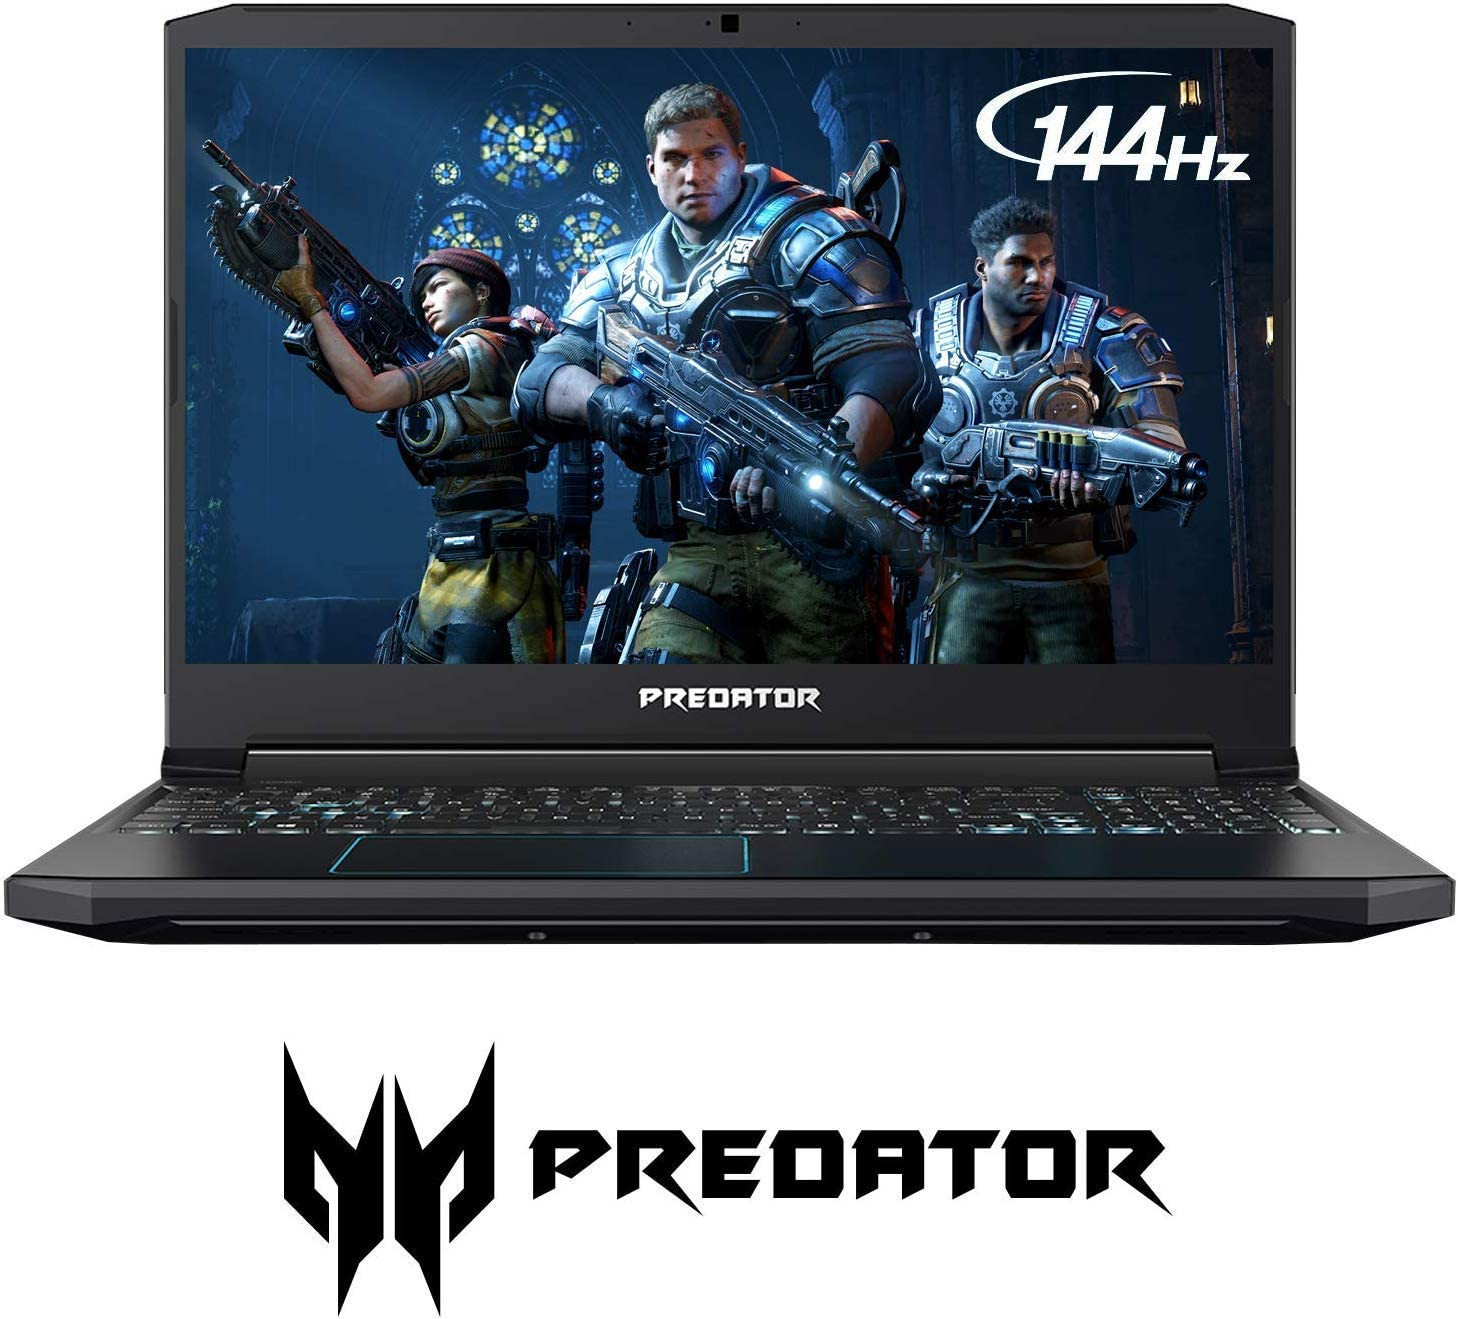 "Acer Predator Helios 300 Gaming Laptop PC, 15.6"" Full HD 144Hz IPS Display, Intel i7-8750H, GTX 1060 6GB, 32GB DDR4, 256GB PCIe NVMe SSD, Backlit Keyboard, Windows 10 Home"